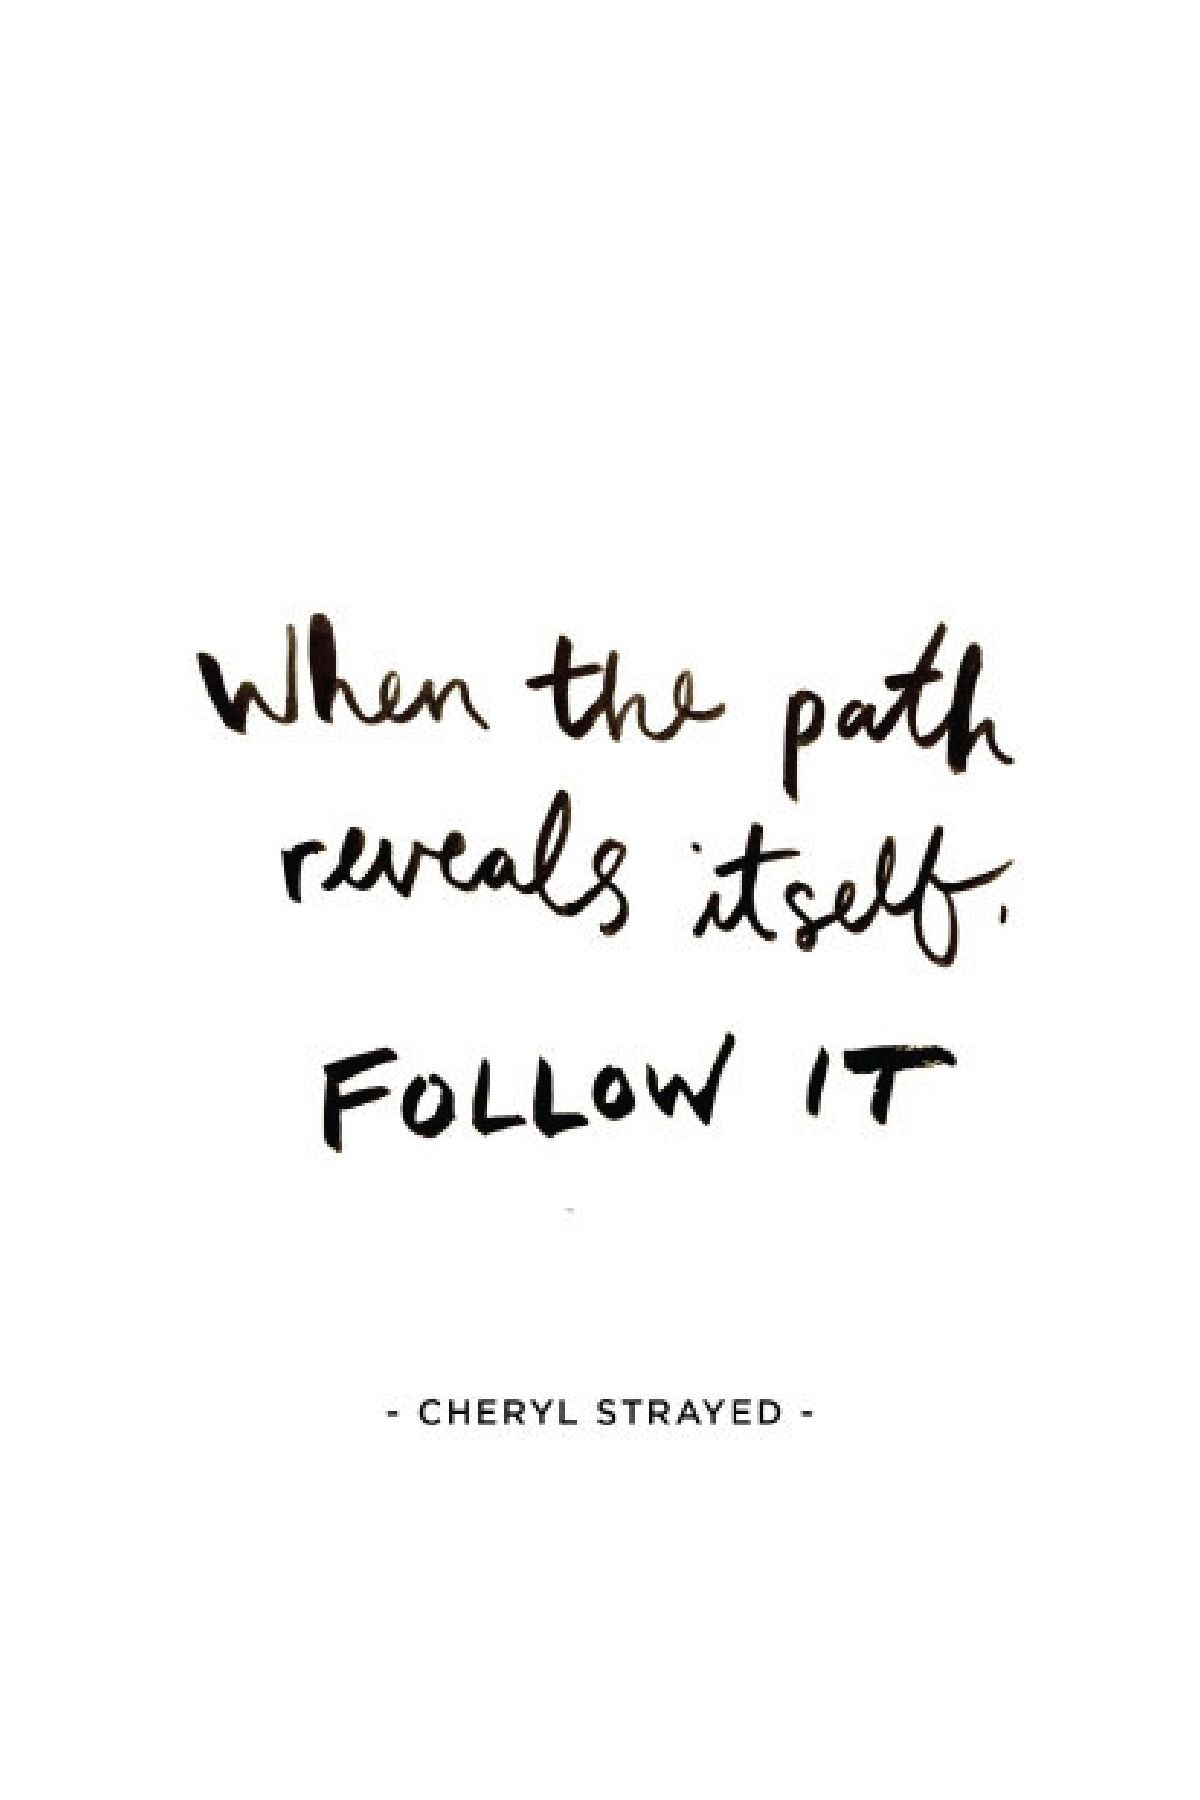 Spiritual Quotes About Love And Life When The Path Reveals Itself Follow It Cheryl Strayed  For Me